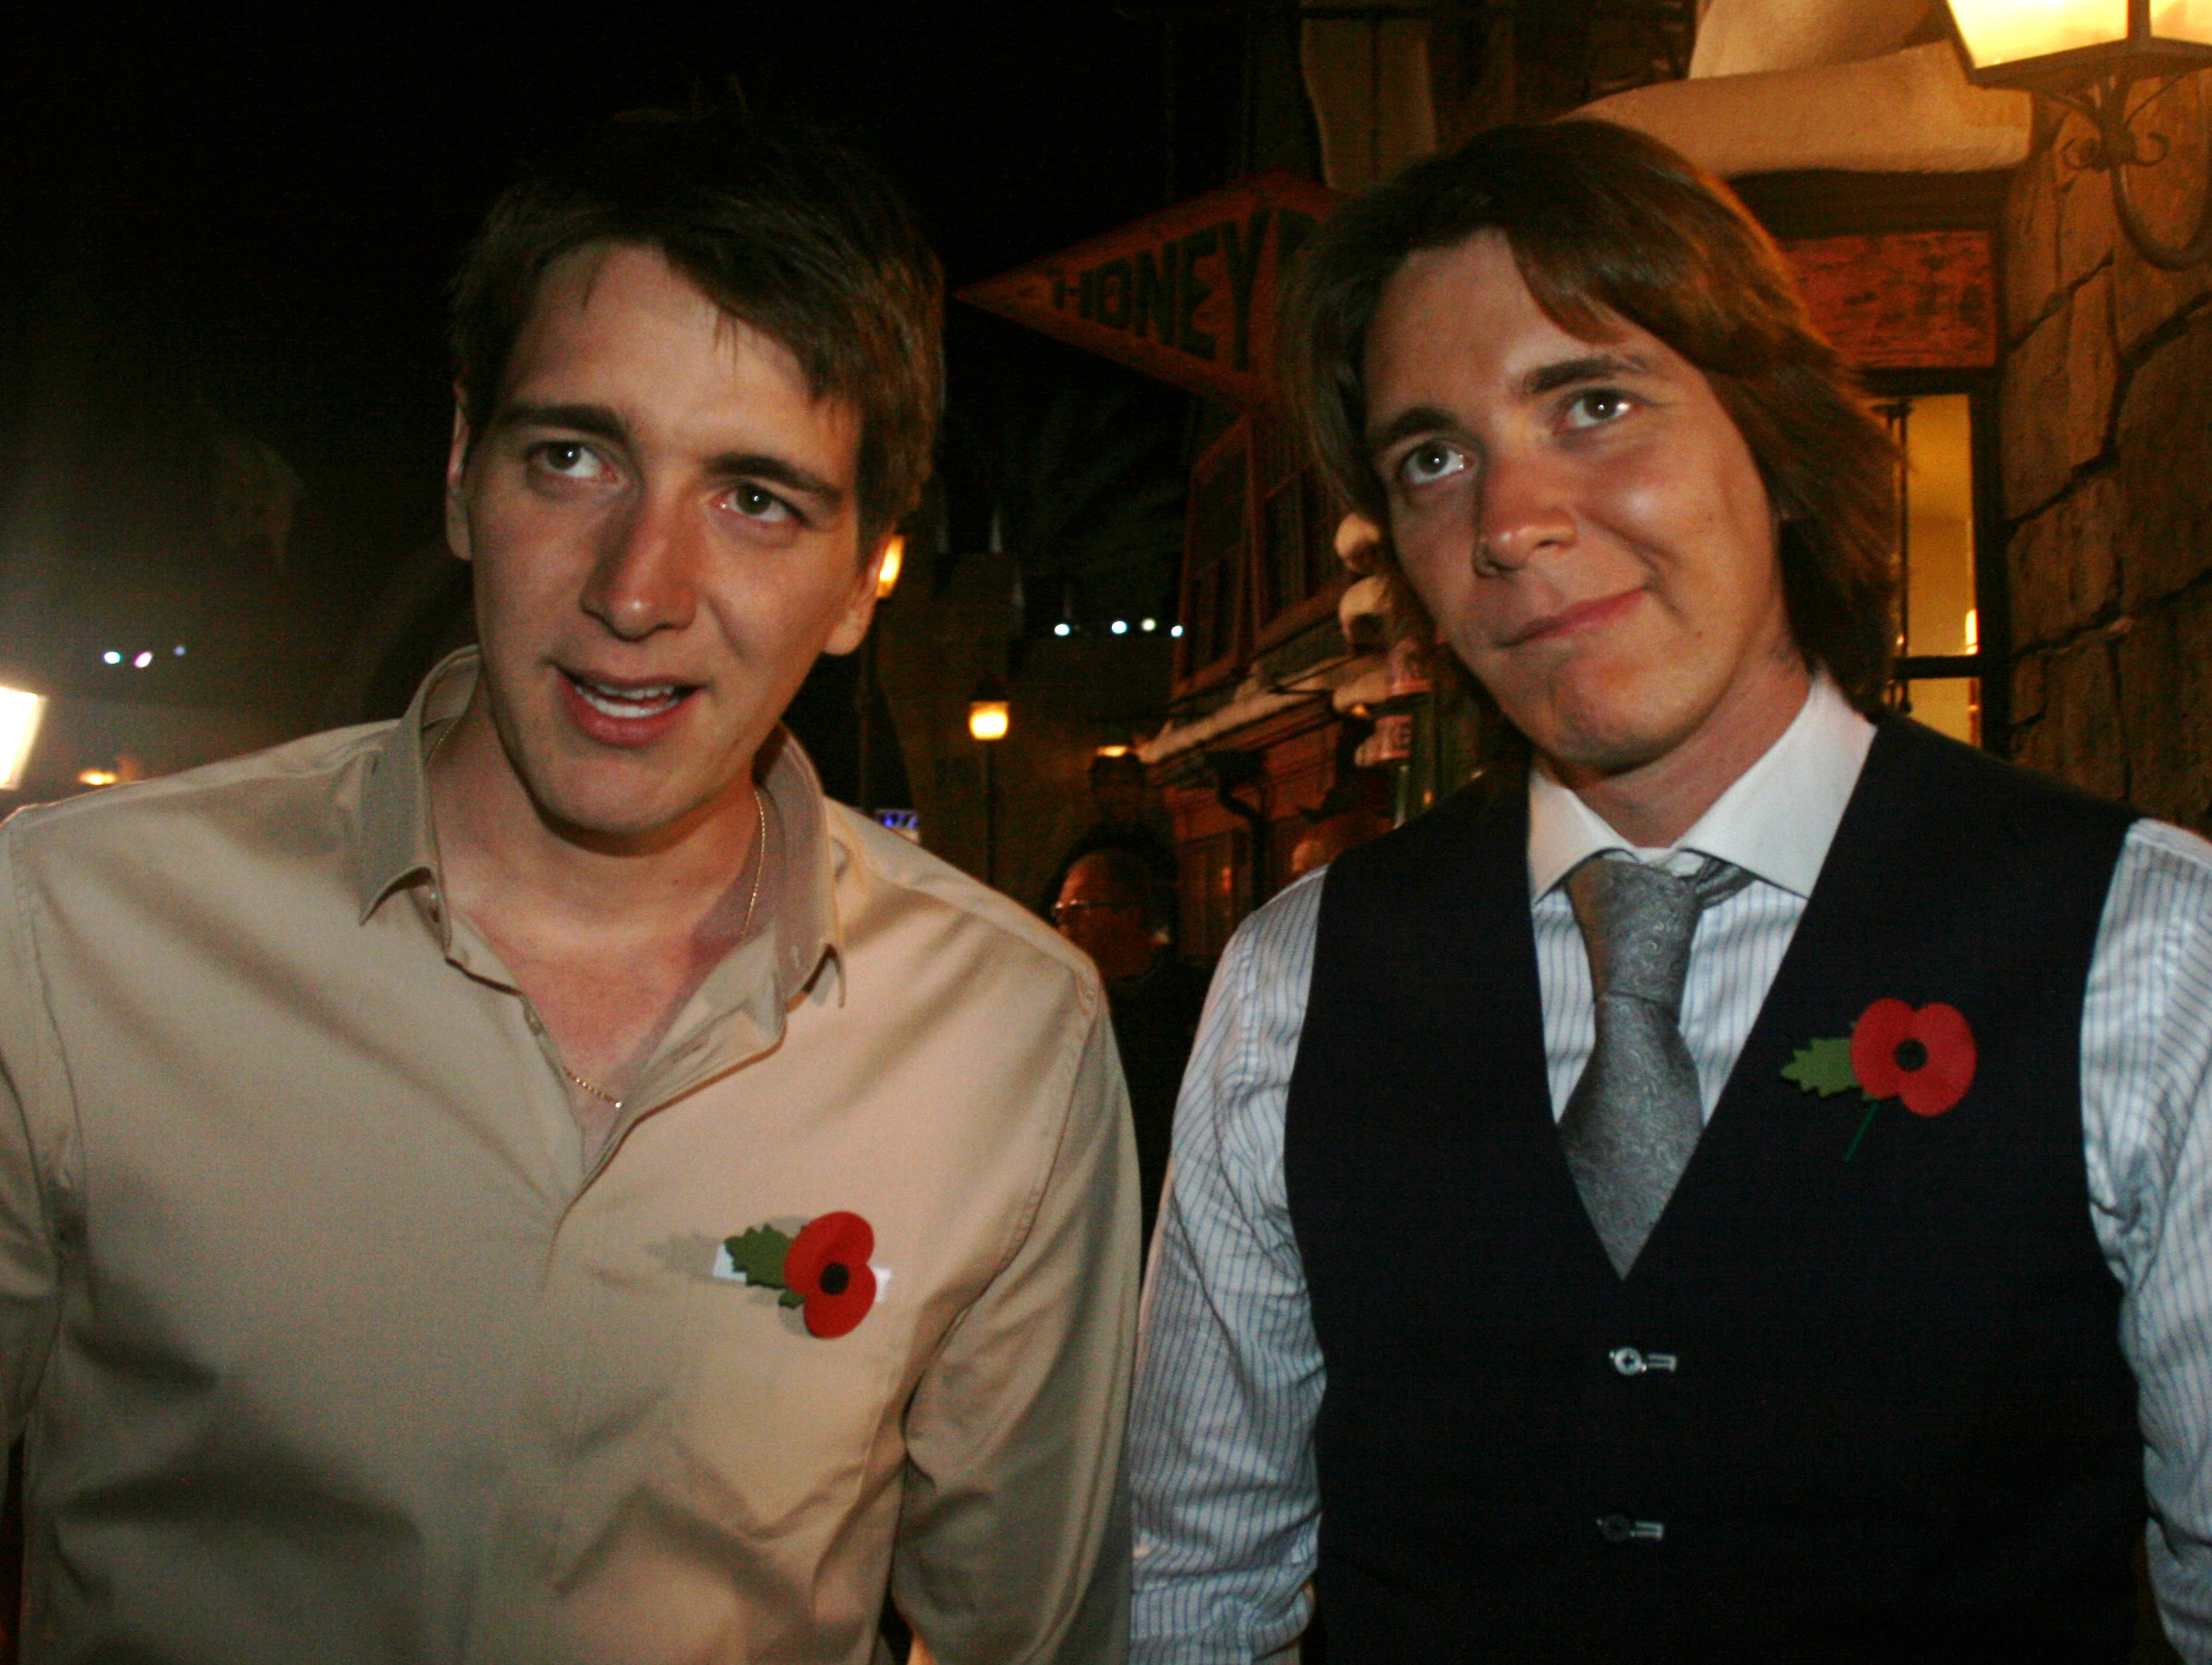 James Oliver Phelps Fred George Weasley Beyond The Marquee